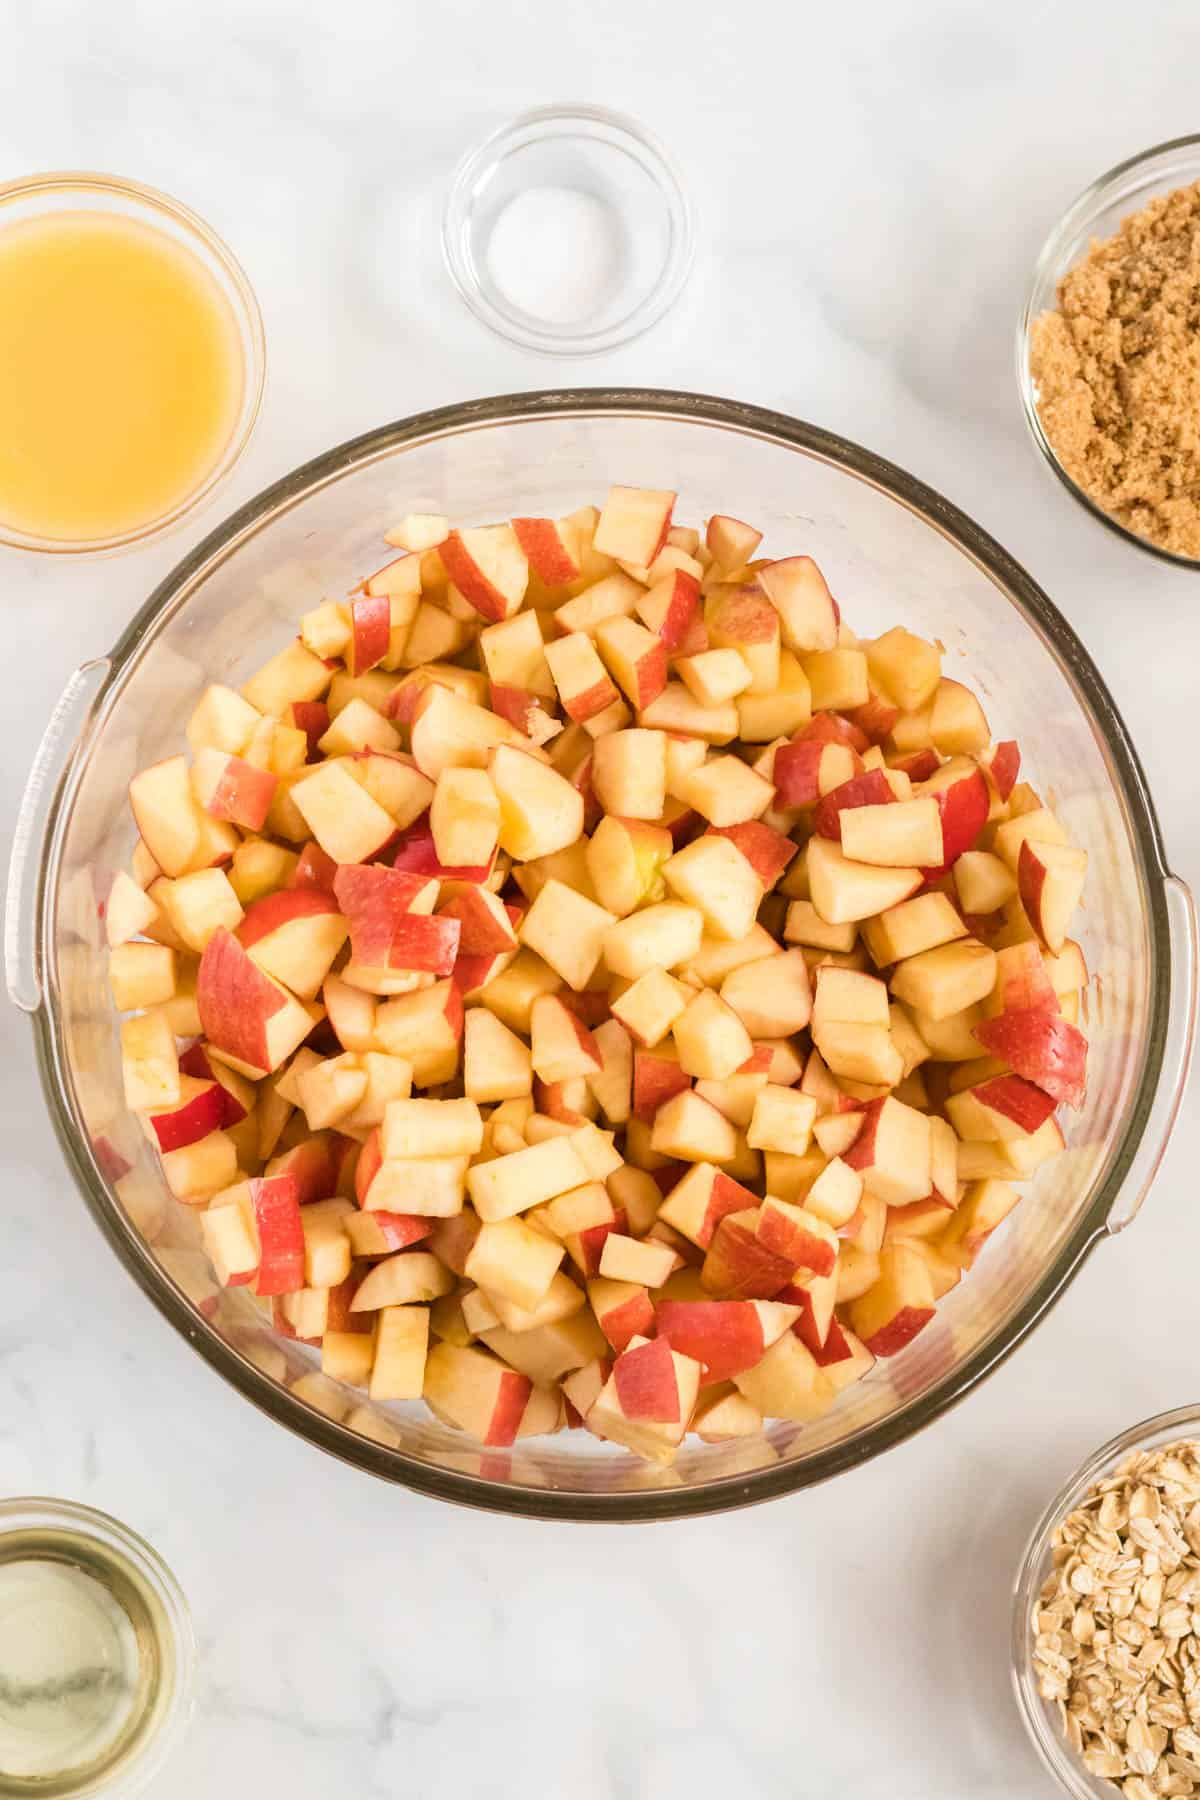 apples cut up in a bowl